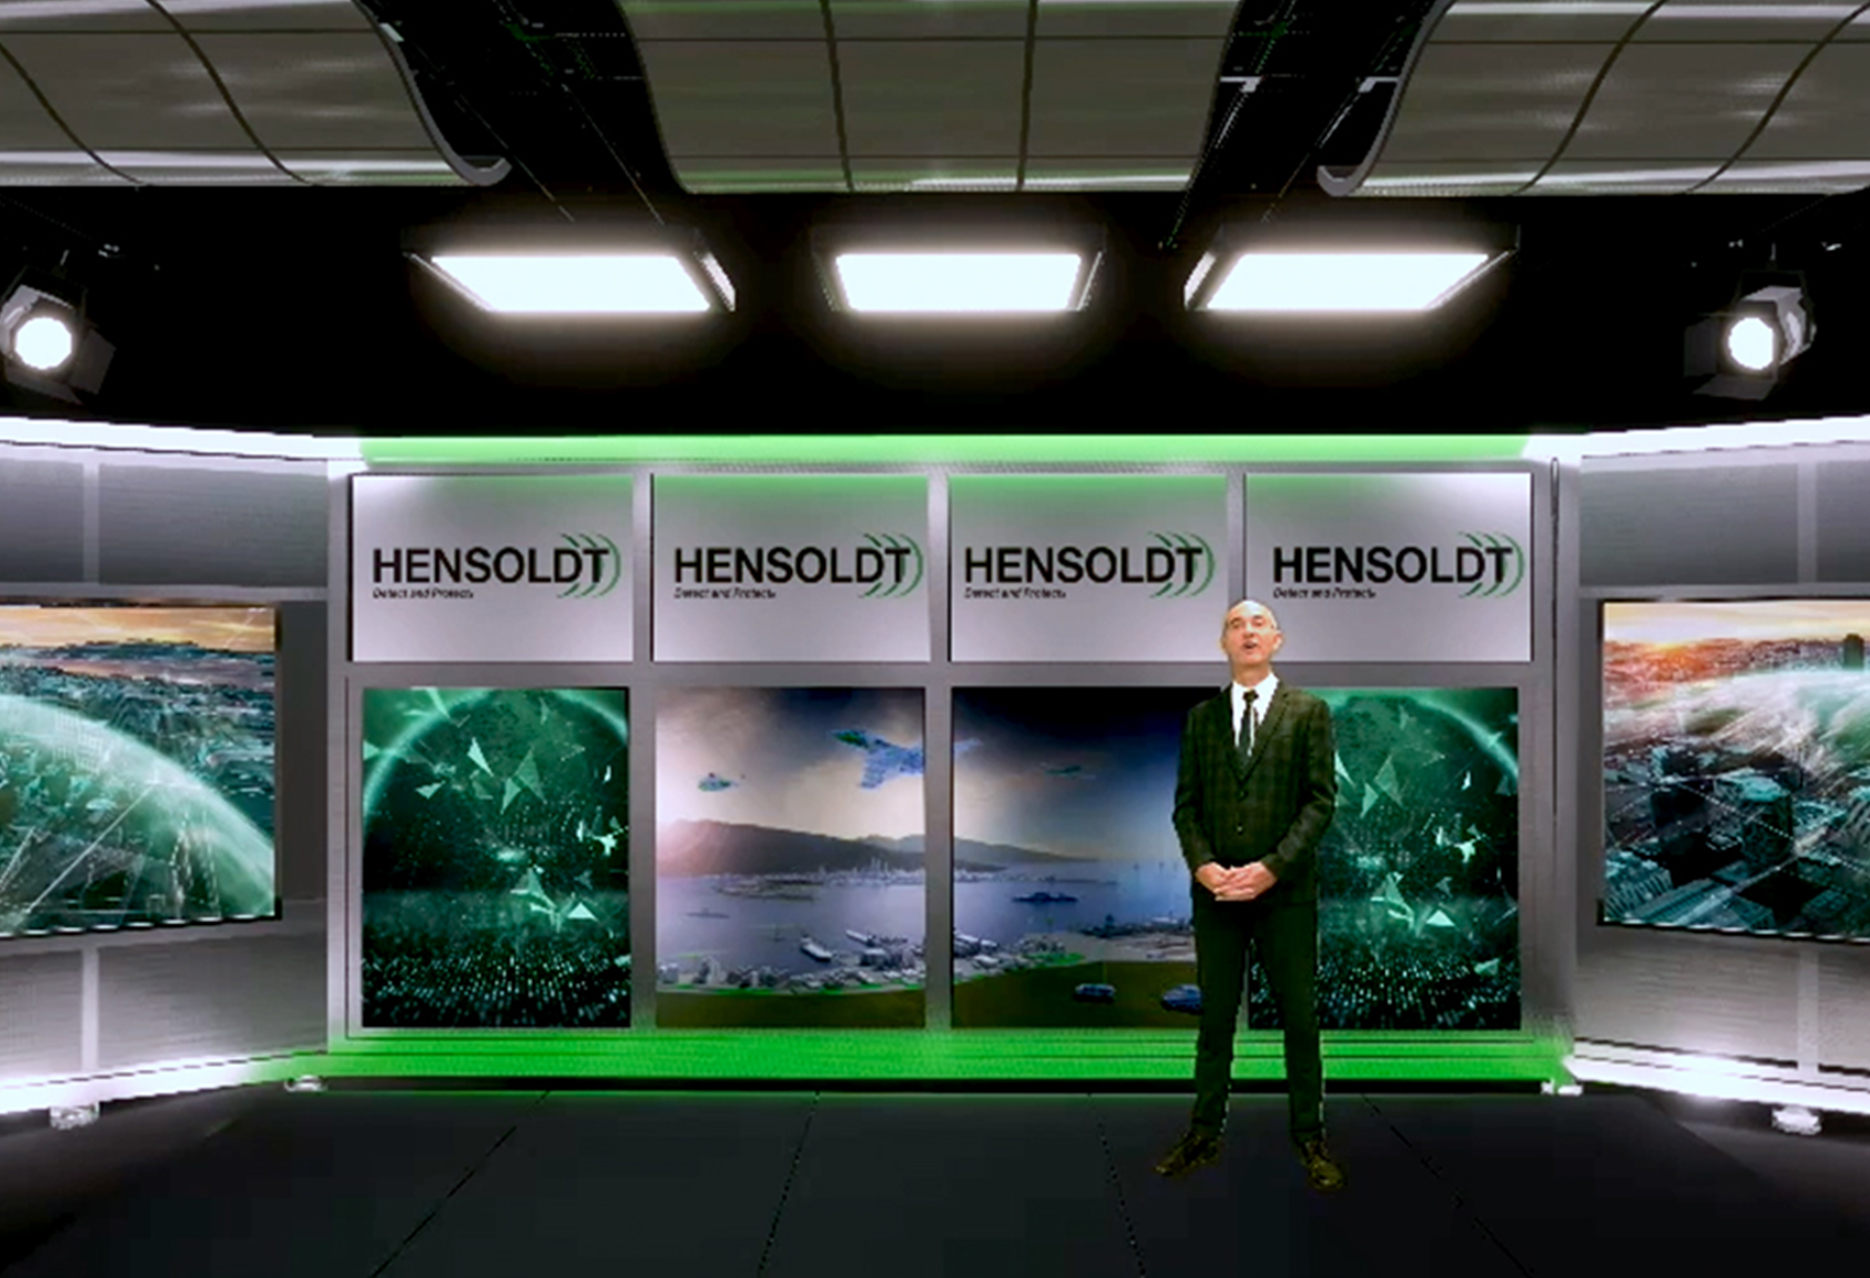 HENSOLDT presents its expertise on border security solutions